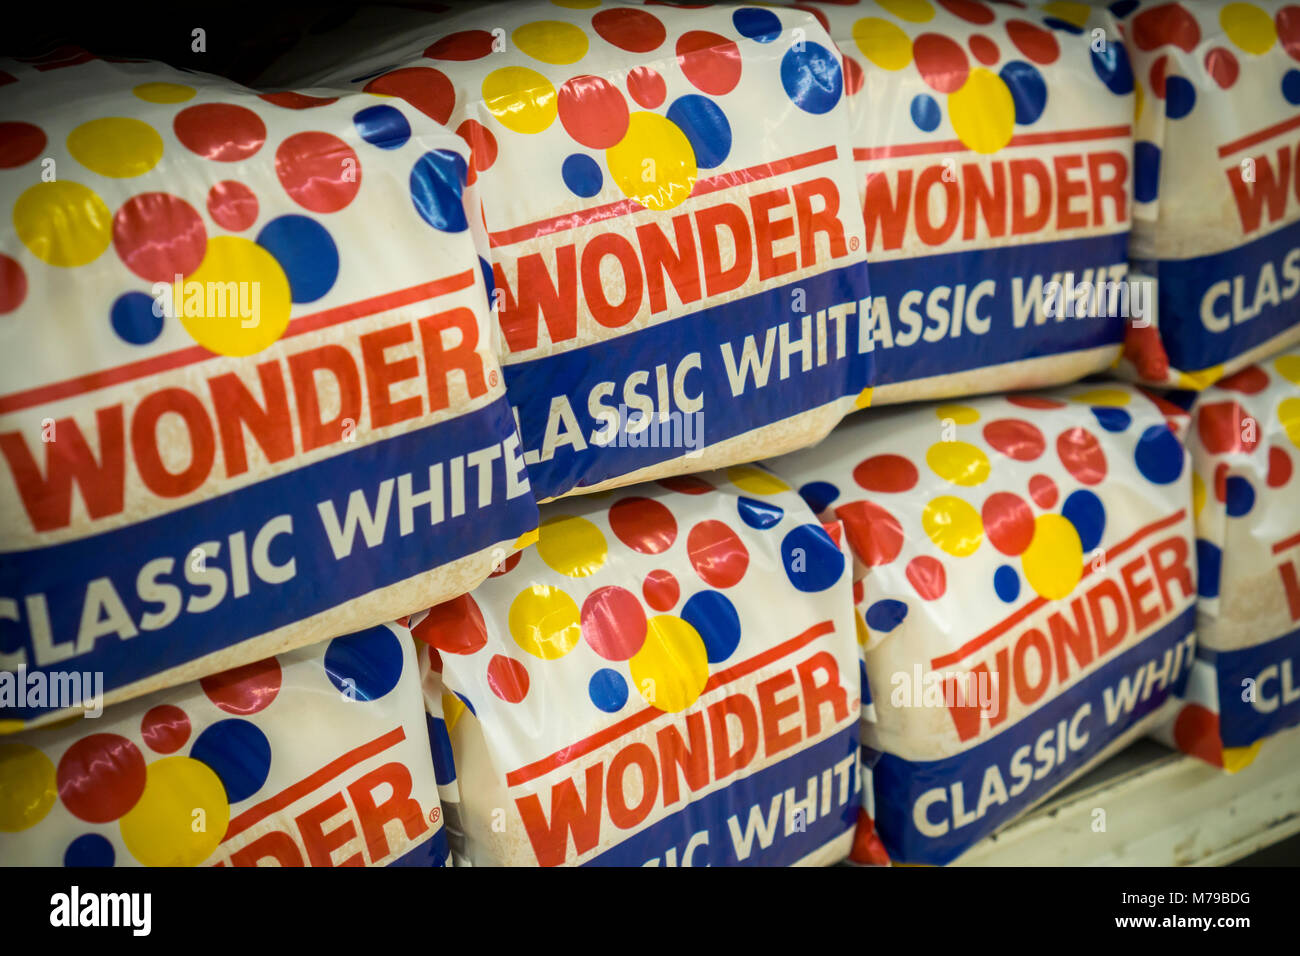 A plentiful supply of loaves of Wonder Bread in a supermarket New York on Tuesday, March 6, 2018. Wonder Bread is - Stock Image